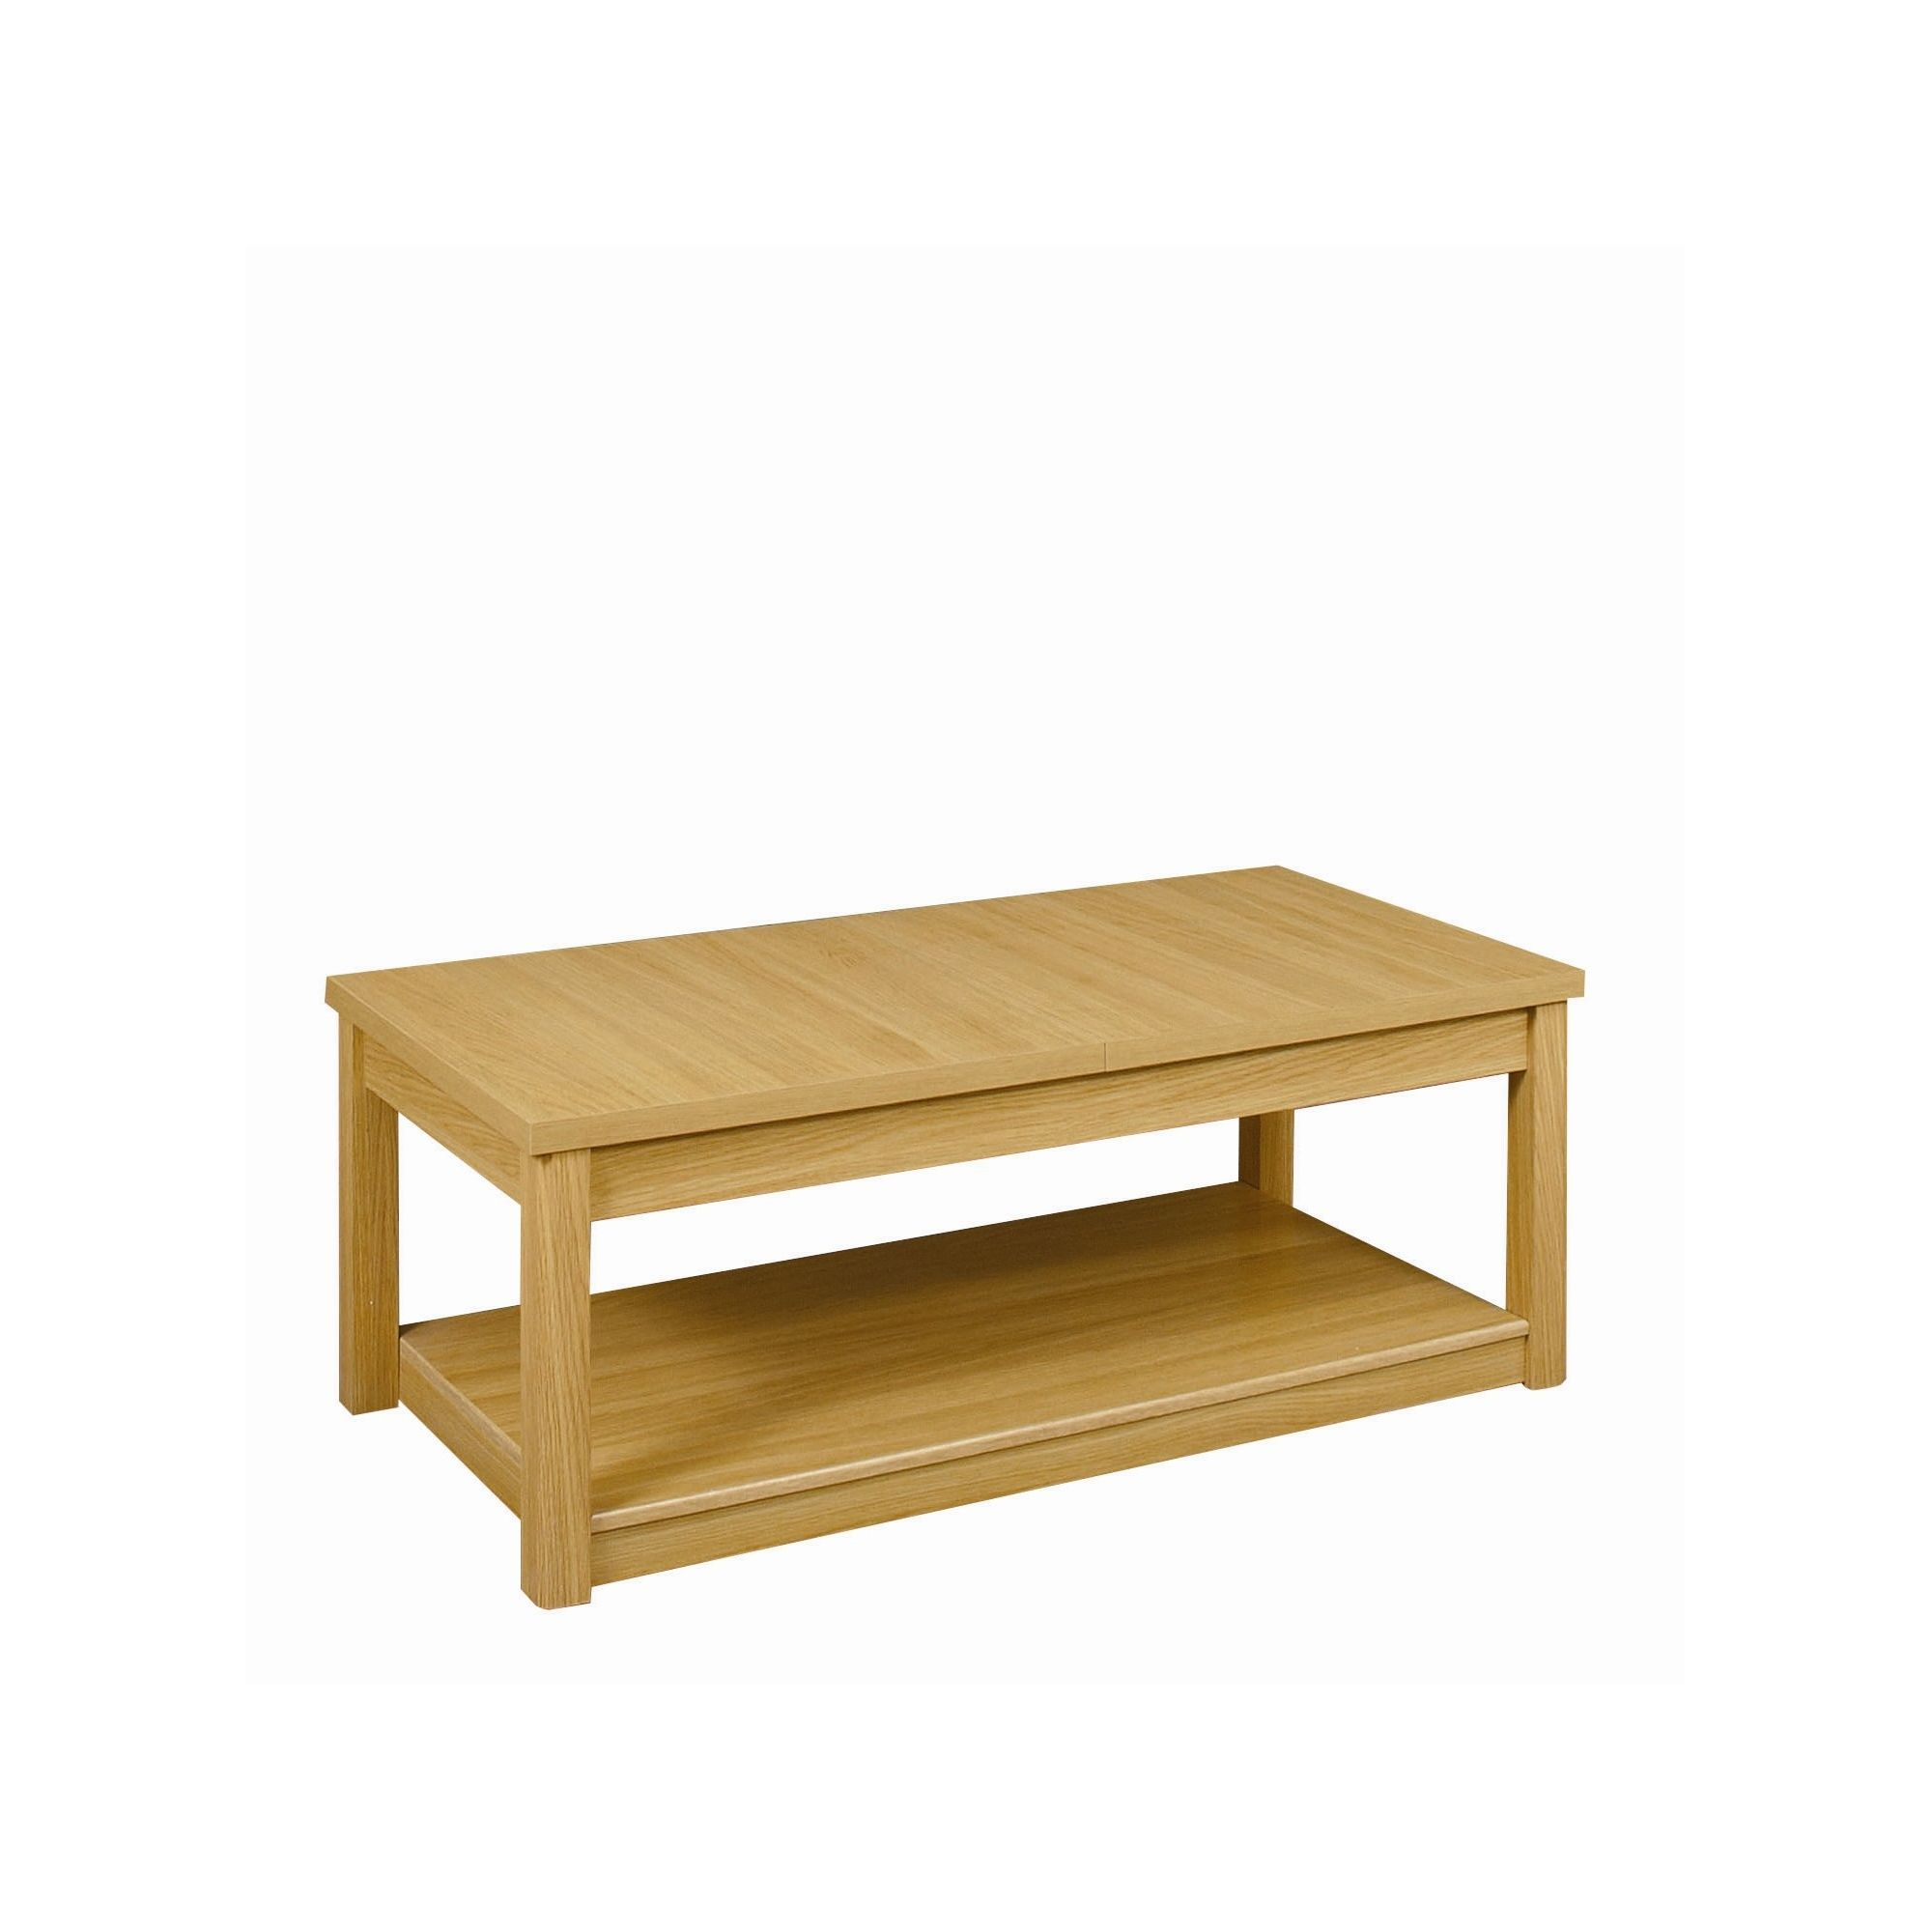 Caxton Huxley Coffee Table in Light Oak at Tesco Direct